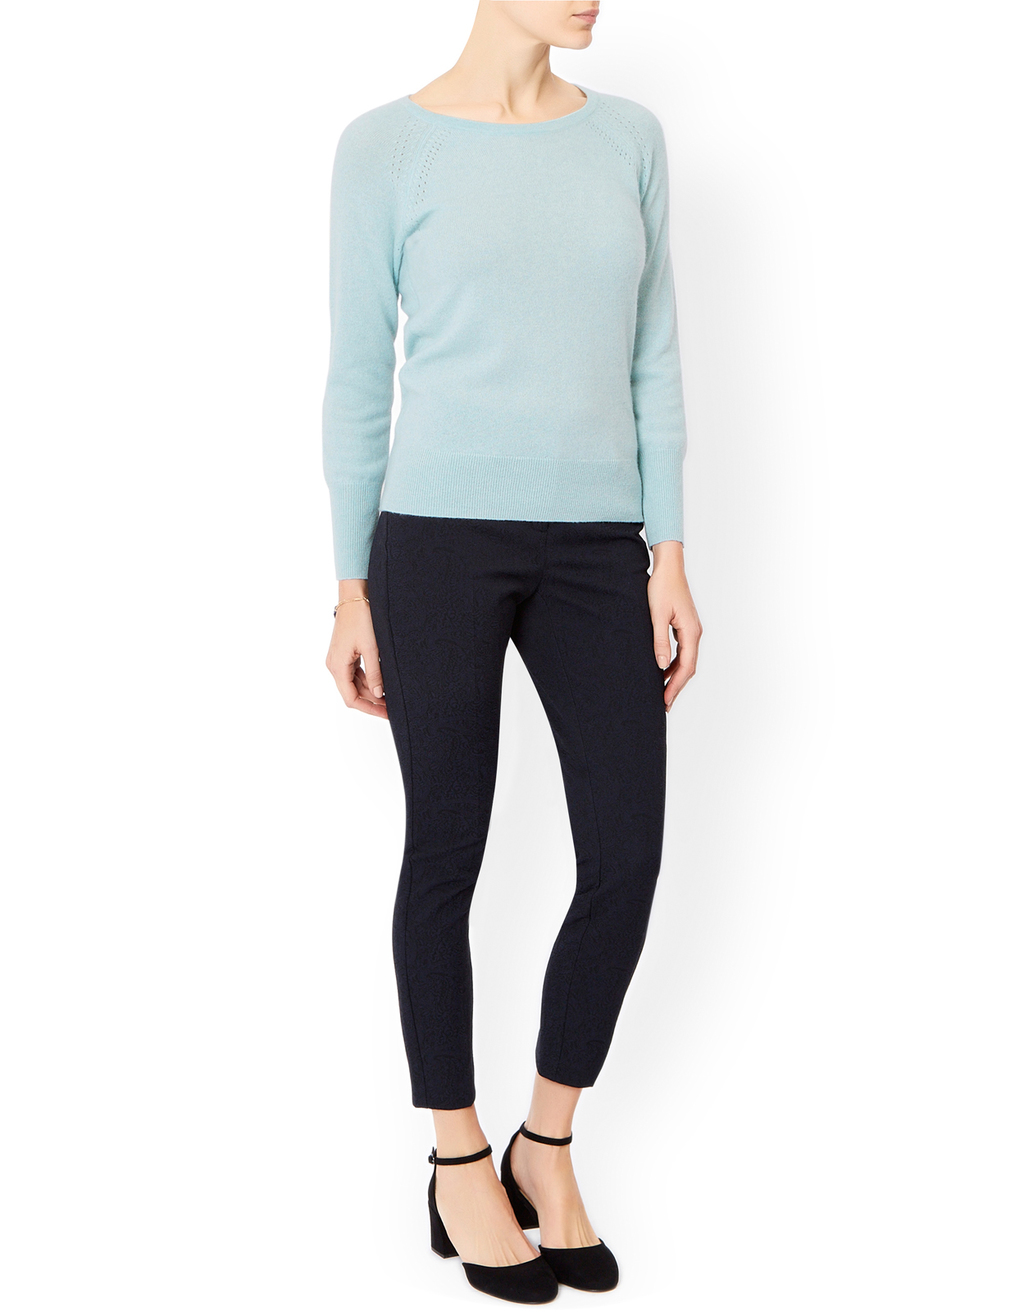 Viola Cashmere Crew Neck Jumper - neckline: round neck; pattern: plain; style: standard; predominant colour: pale blue; occasions: casual, work, creative work; length: standard; fit: standard fit; fibres: cashmere - 100%; sleeve length: long sleeve; sleeve style: standard; texture group: knits/crochet; pattern type: knitted - fine stitch; season: a/w 2015